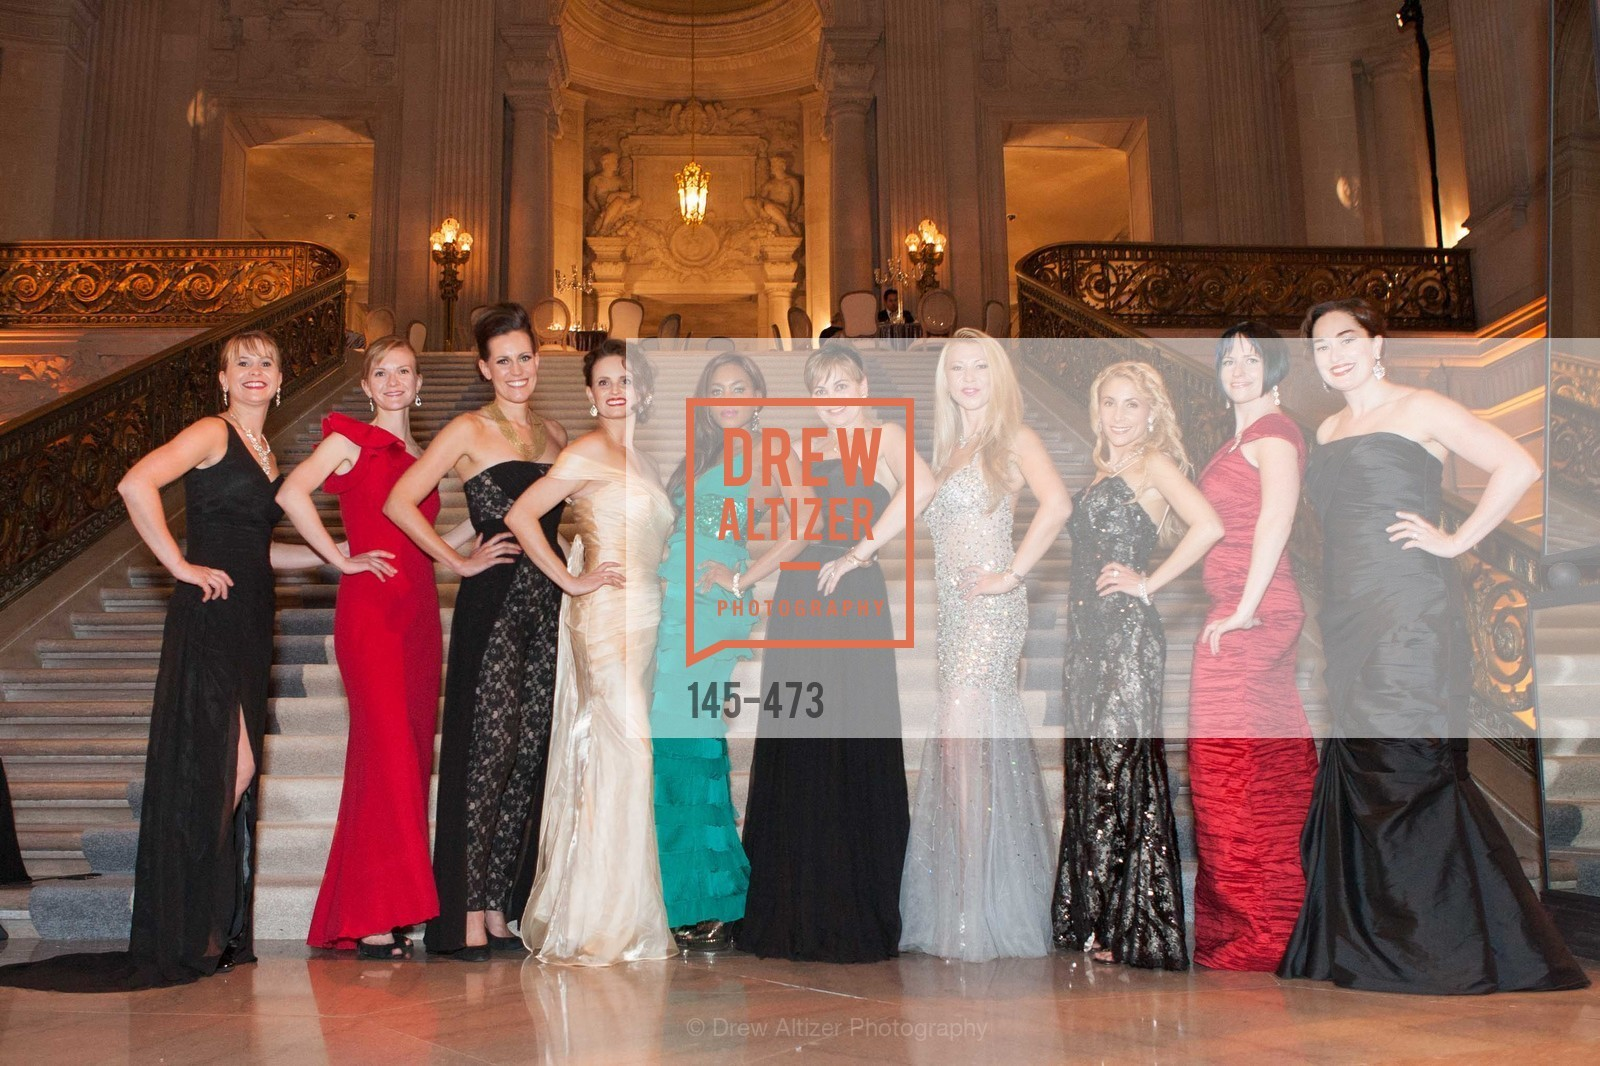 Kelly Cramer, Greer Goings, Ashley Tudor, Alyson Blume, Vanessa Jean Baptiste, Jane Burkhard, Lena Gikkas, Robin Farmanfarmaian, Joanna Winter, Bridget Dixon Nguyen, ENCORE! at San Francisco BALLET'S 2014 Season Opening Night Gala, US. US, January 22nd, 2014,Drew Altizer, Drew Altizer Photography, full-service agency, private events, San Francisco photographer, photographer california